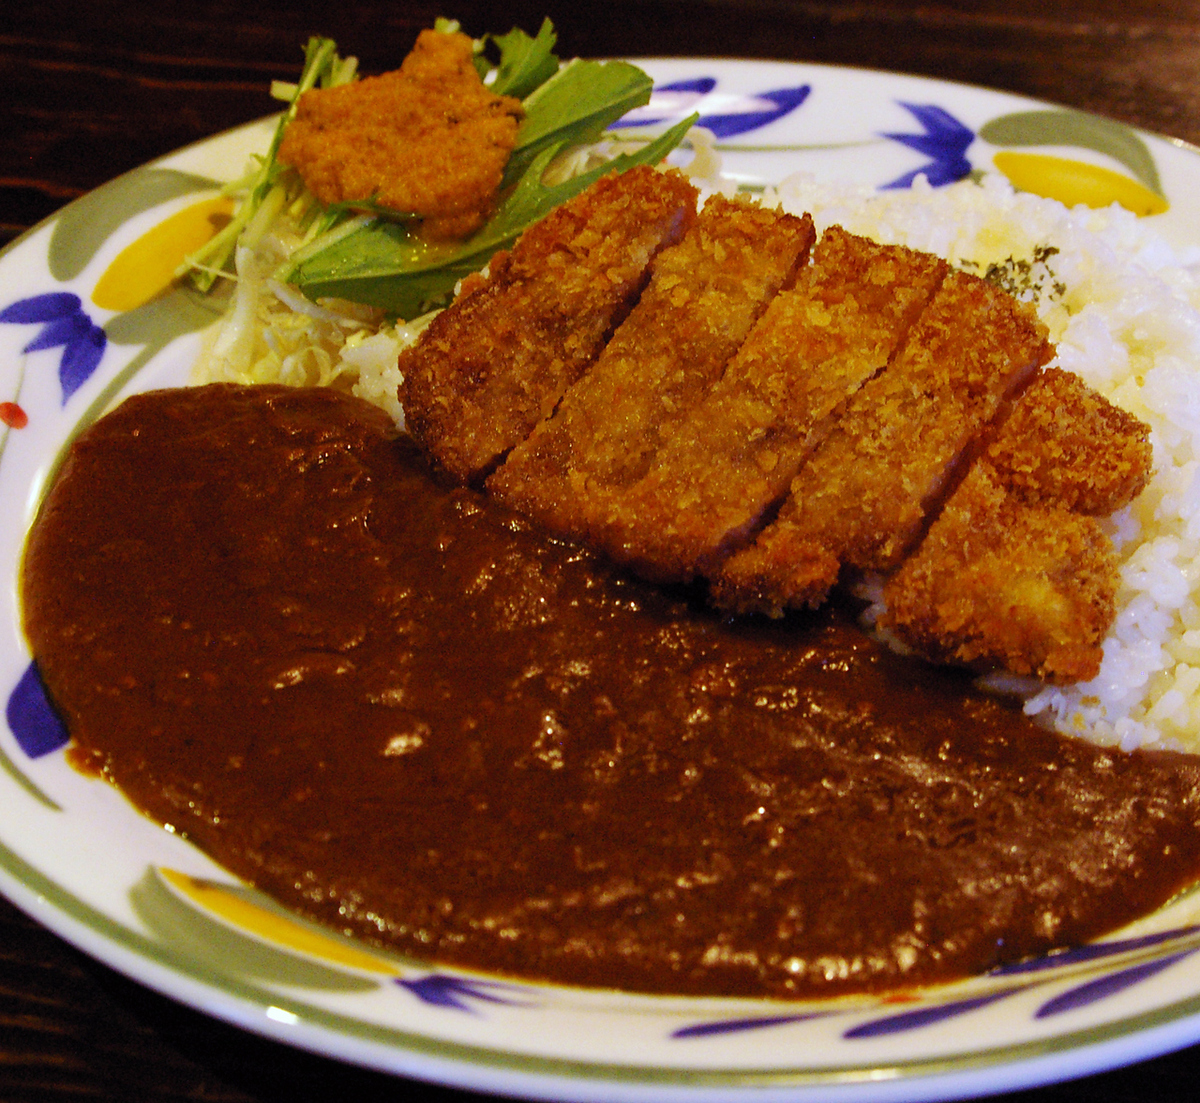 Fortune smoked cutlet curry